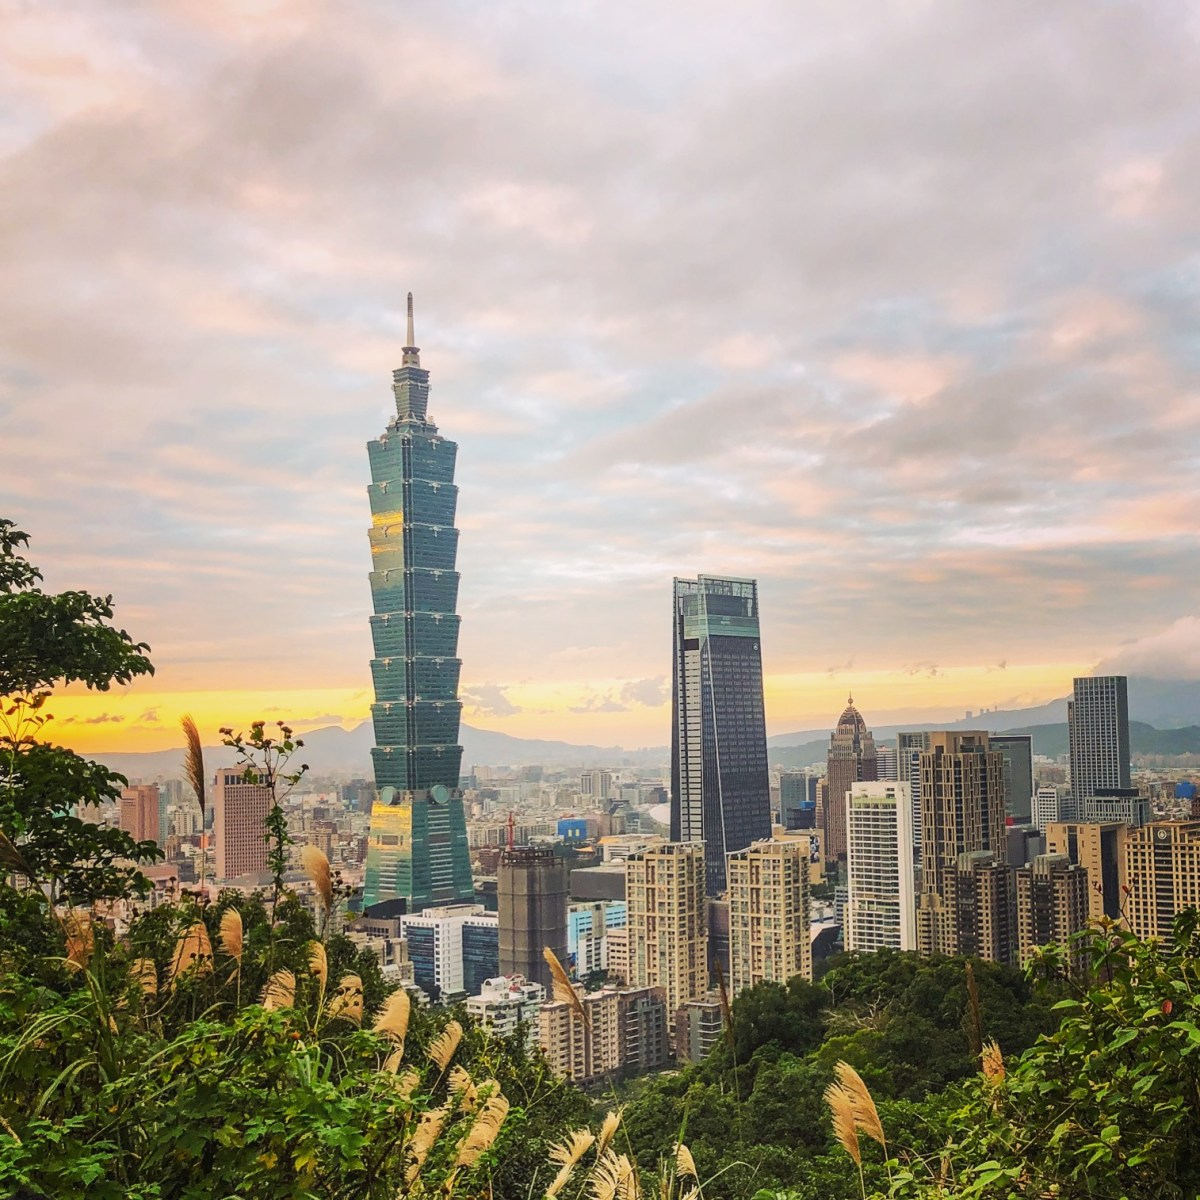 Taipei, Taiwan | Are you planning a solo trip to Taiwan's capital city, Taipei? In this guide, we set out 10 amazing things to do in Taipei alone. Get handy tips and tricks on what to do, see and how to get there. #taipei #taiwan #solo #solotravel #taipeitrip #itinerary #travelplanning